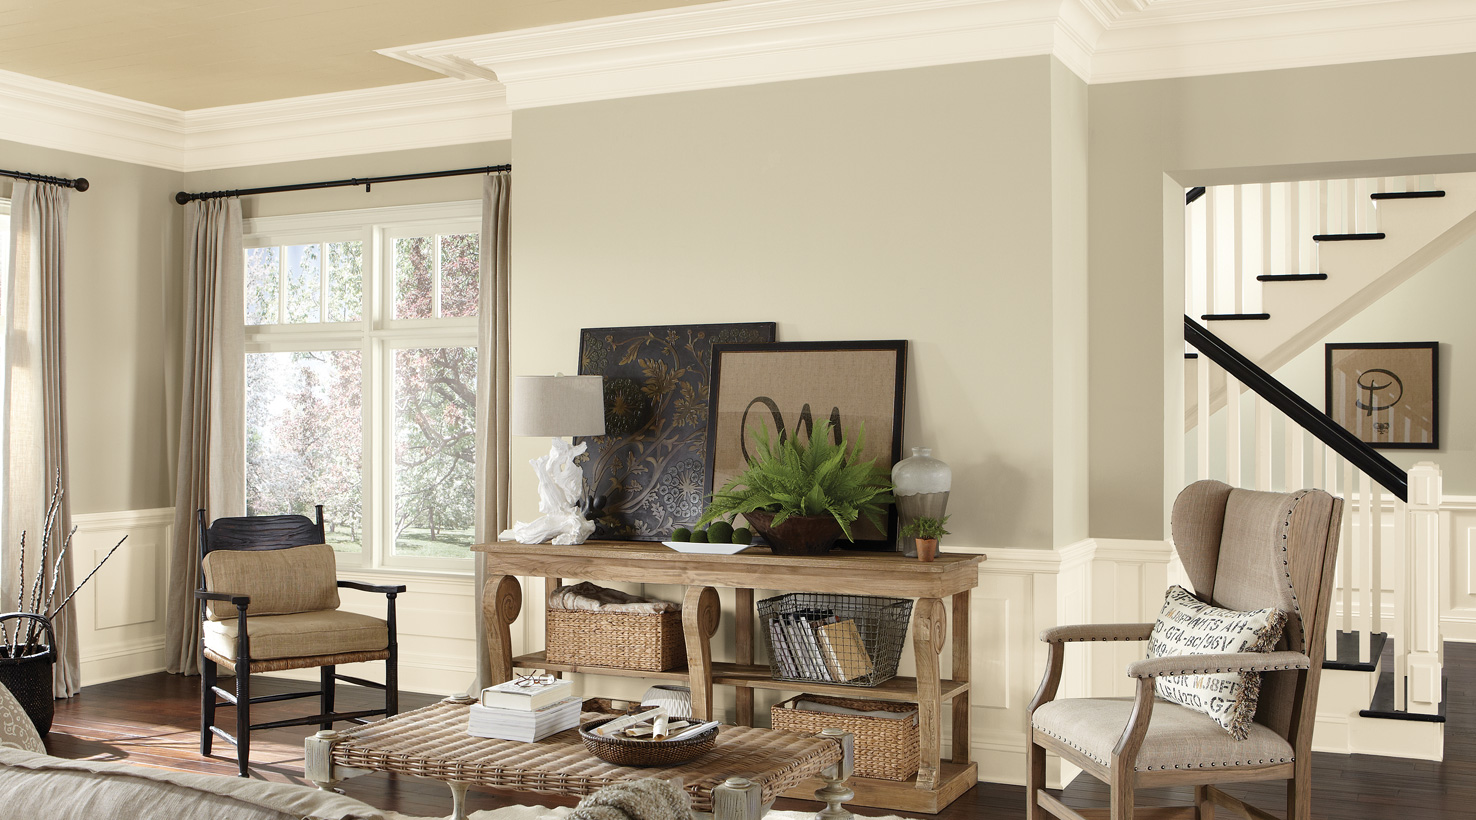 Living room paint color ideas inspiration gallery - Living room color ideas ...